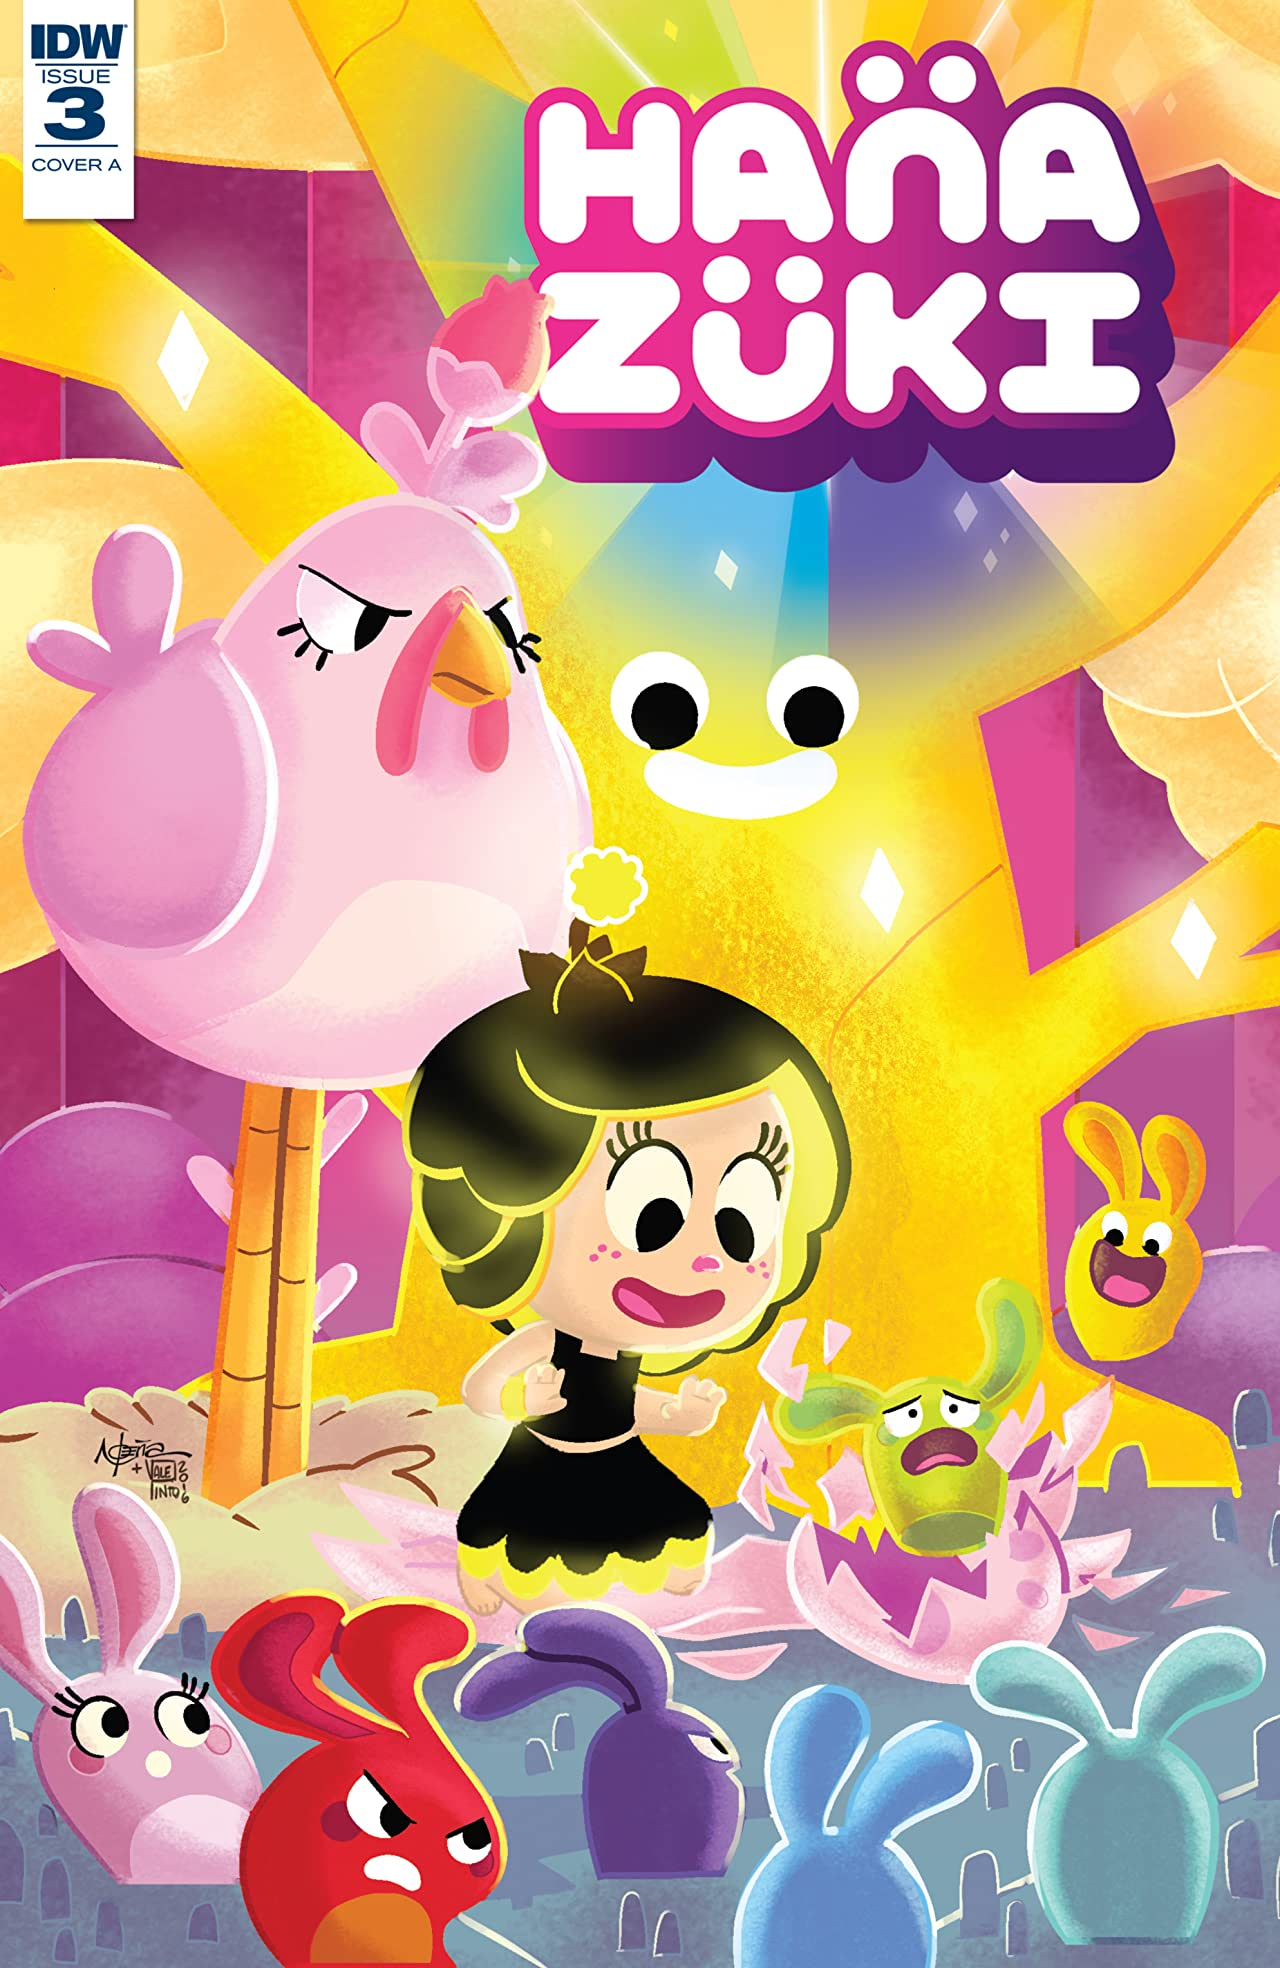 Hanazuki: Full of Treasures #3